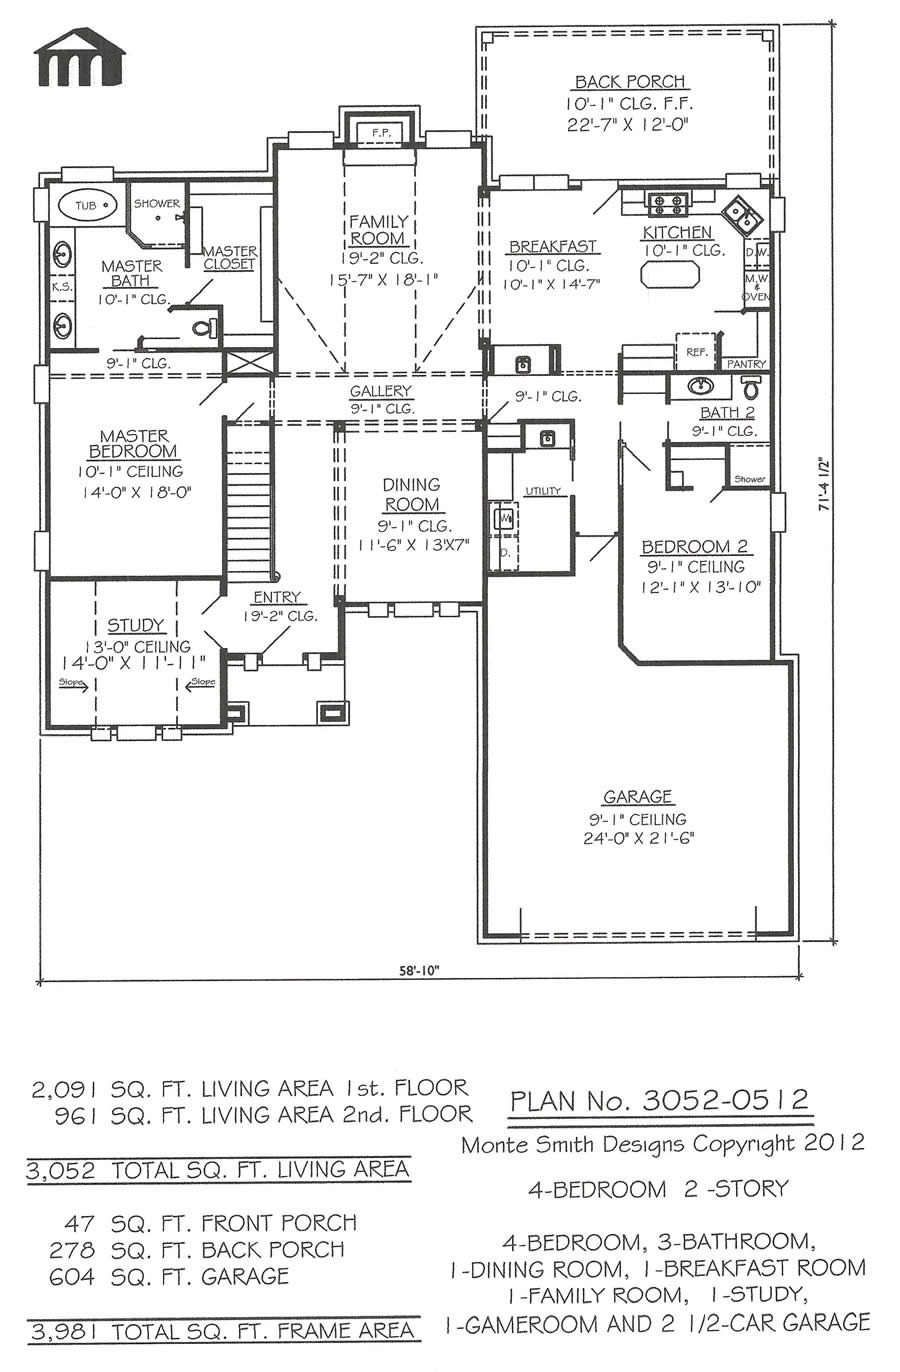 3042 0510 4 Room 2 Story Home house Plans